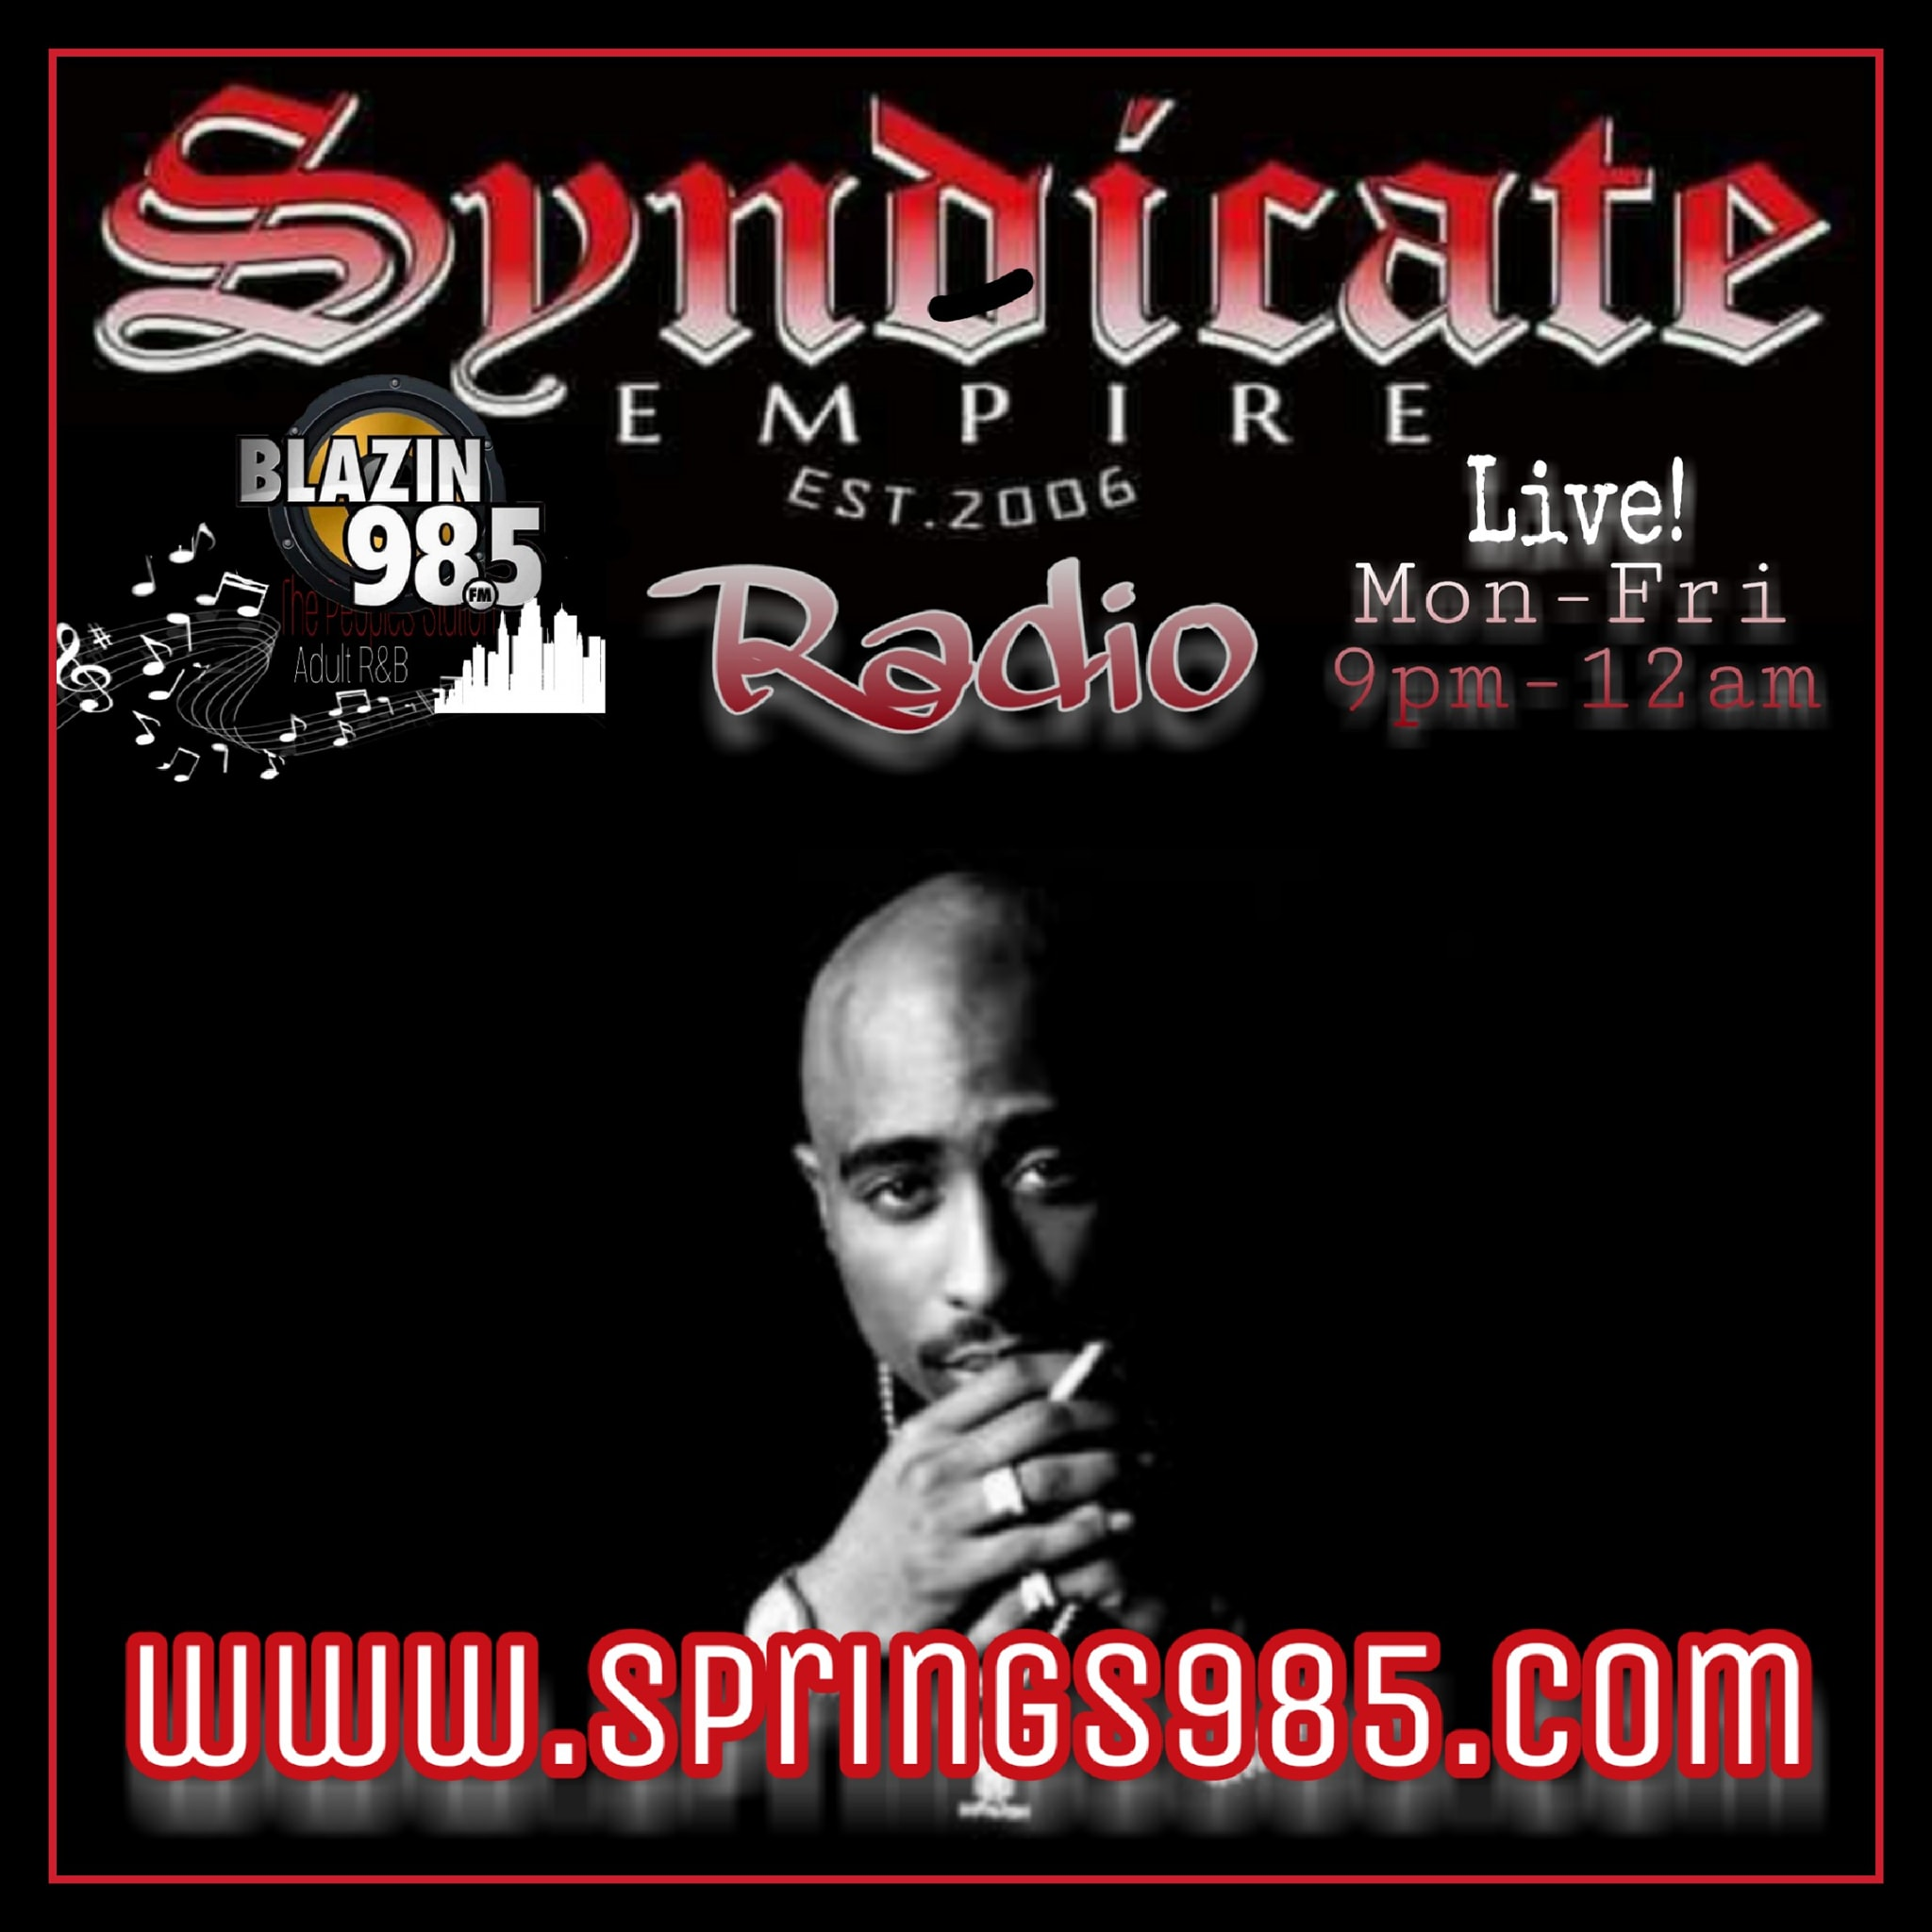 $yndicate Empire Radio